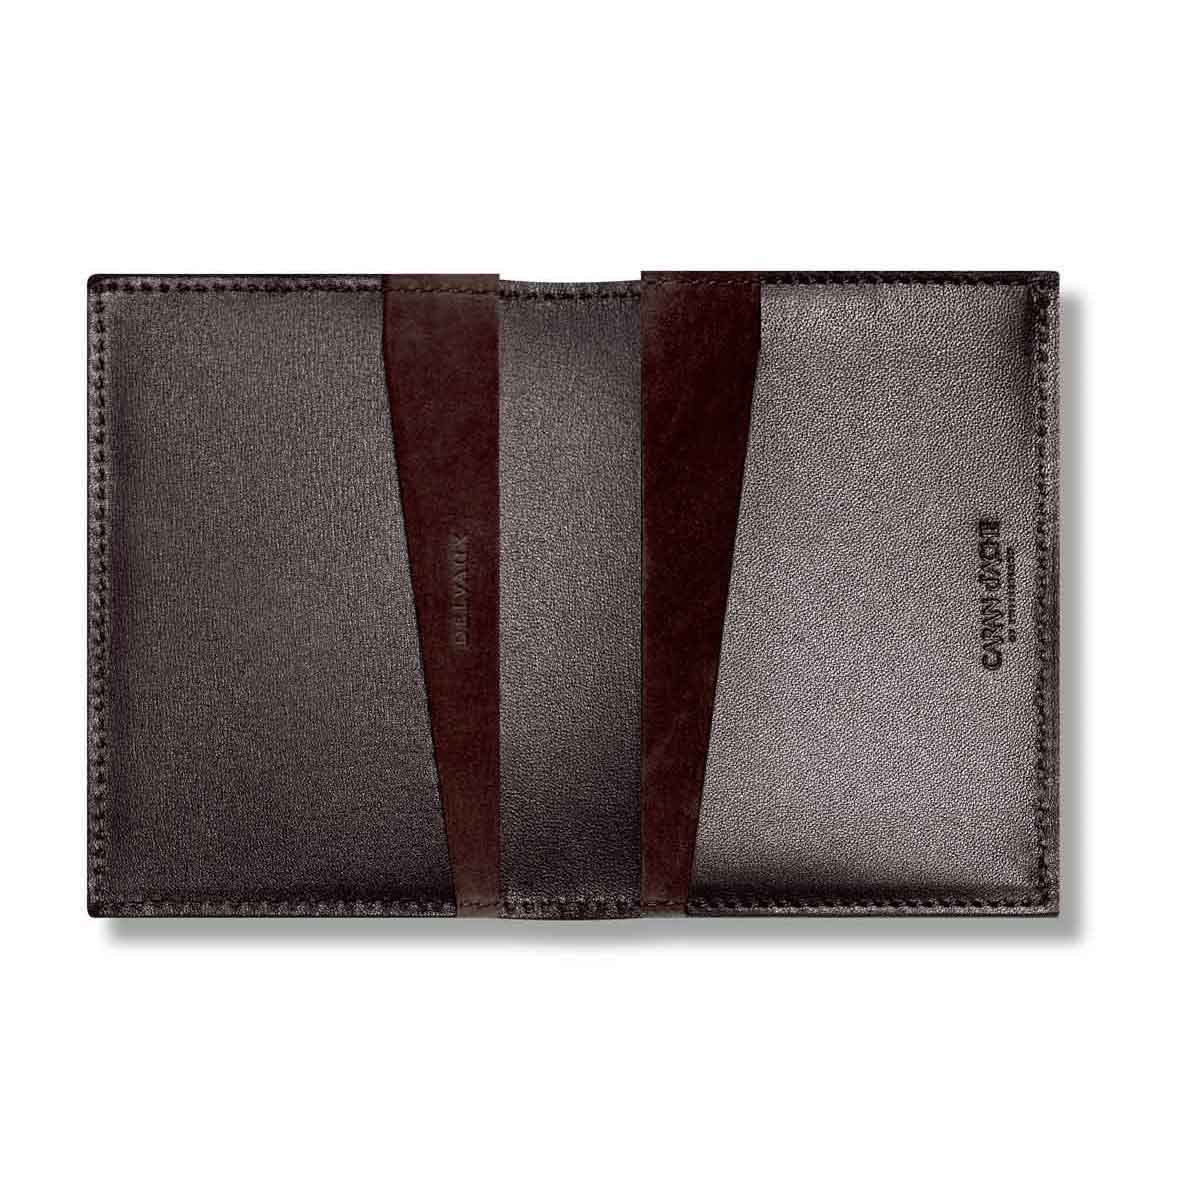 Business Card Holder Wallets for Men | Luxury Leather | Handmade